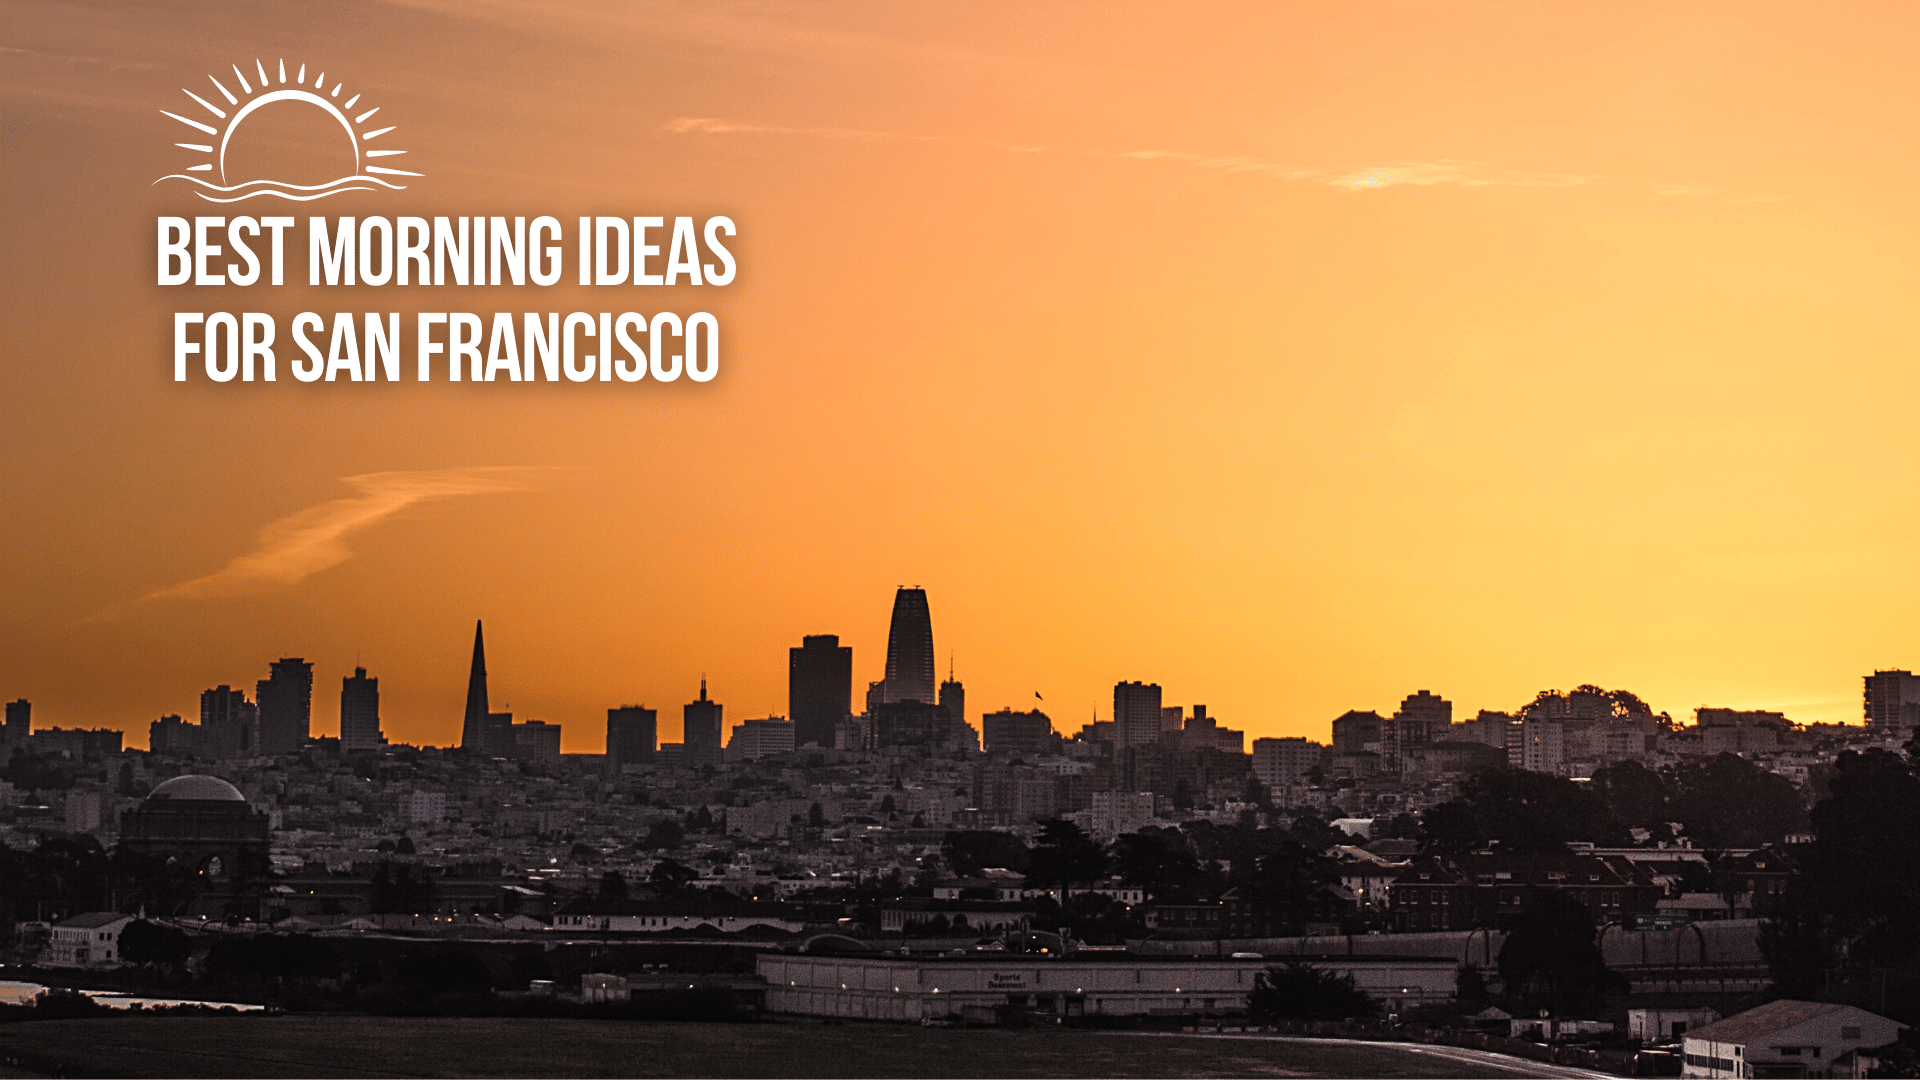 Best_Morning_Ideas_for_San_Francisco_Cover.png